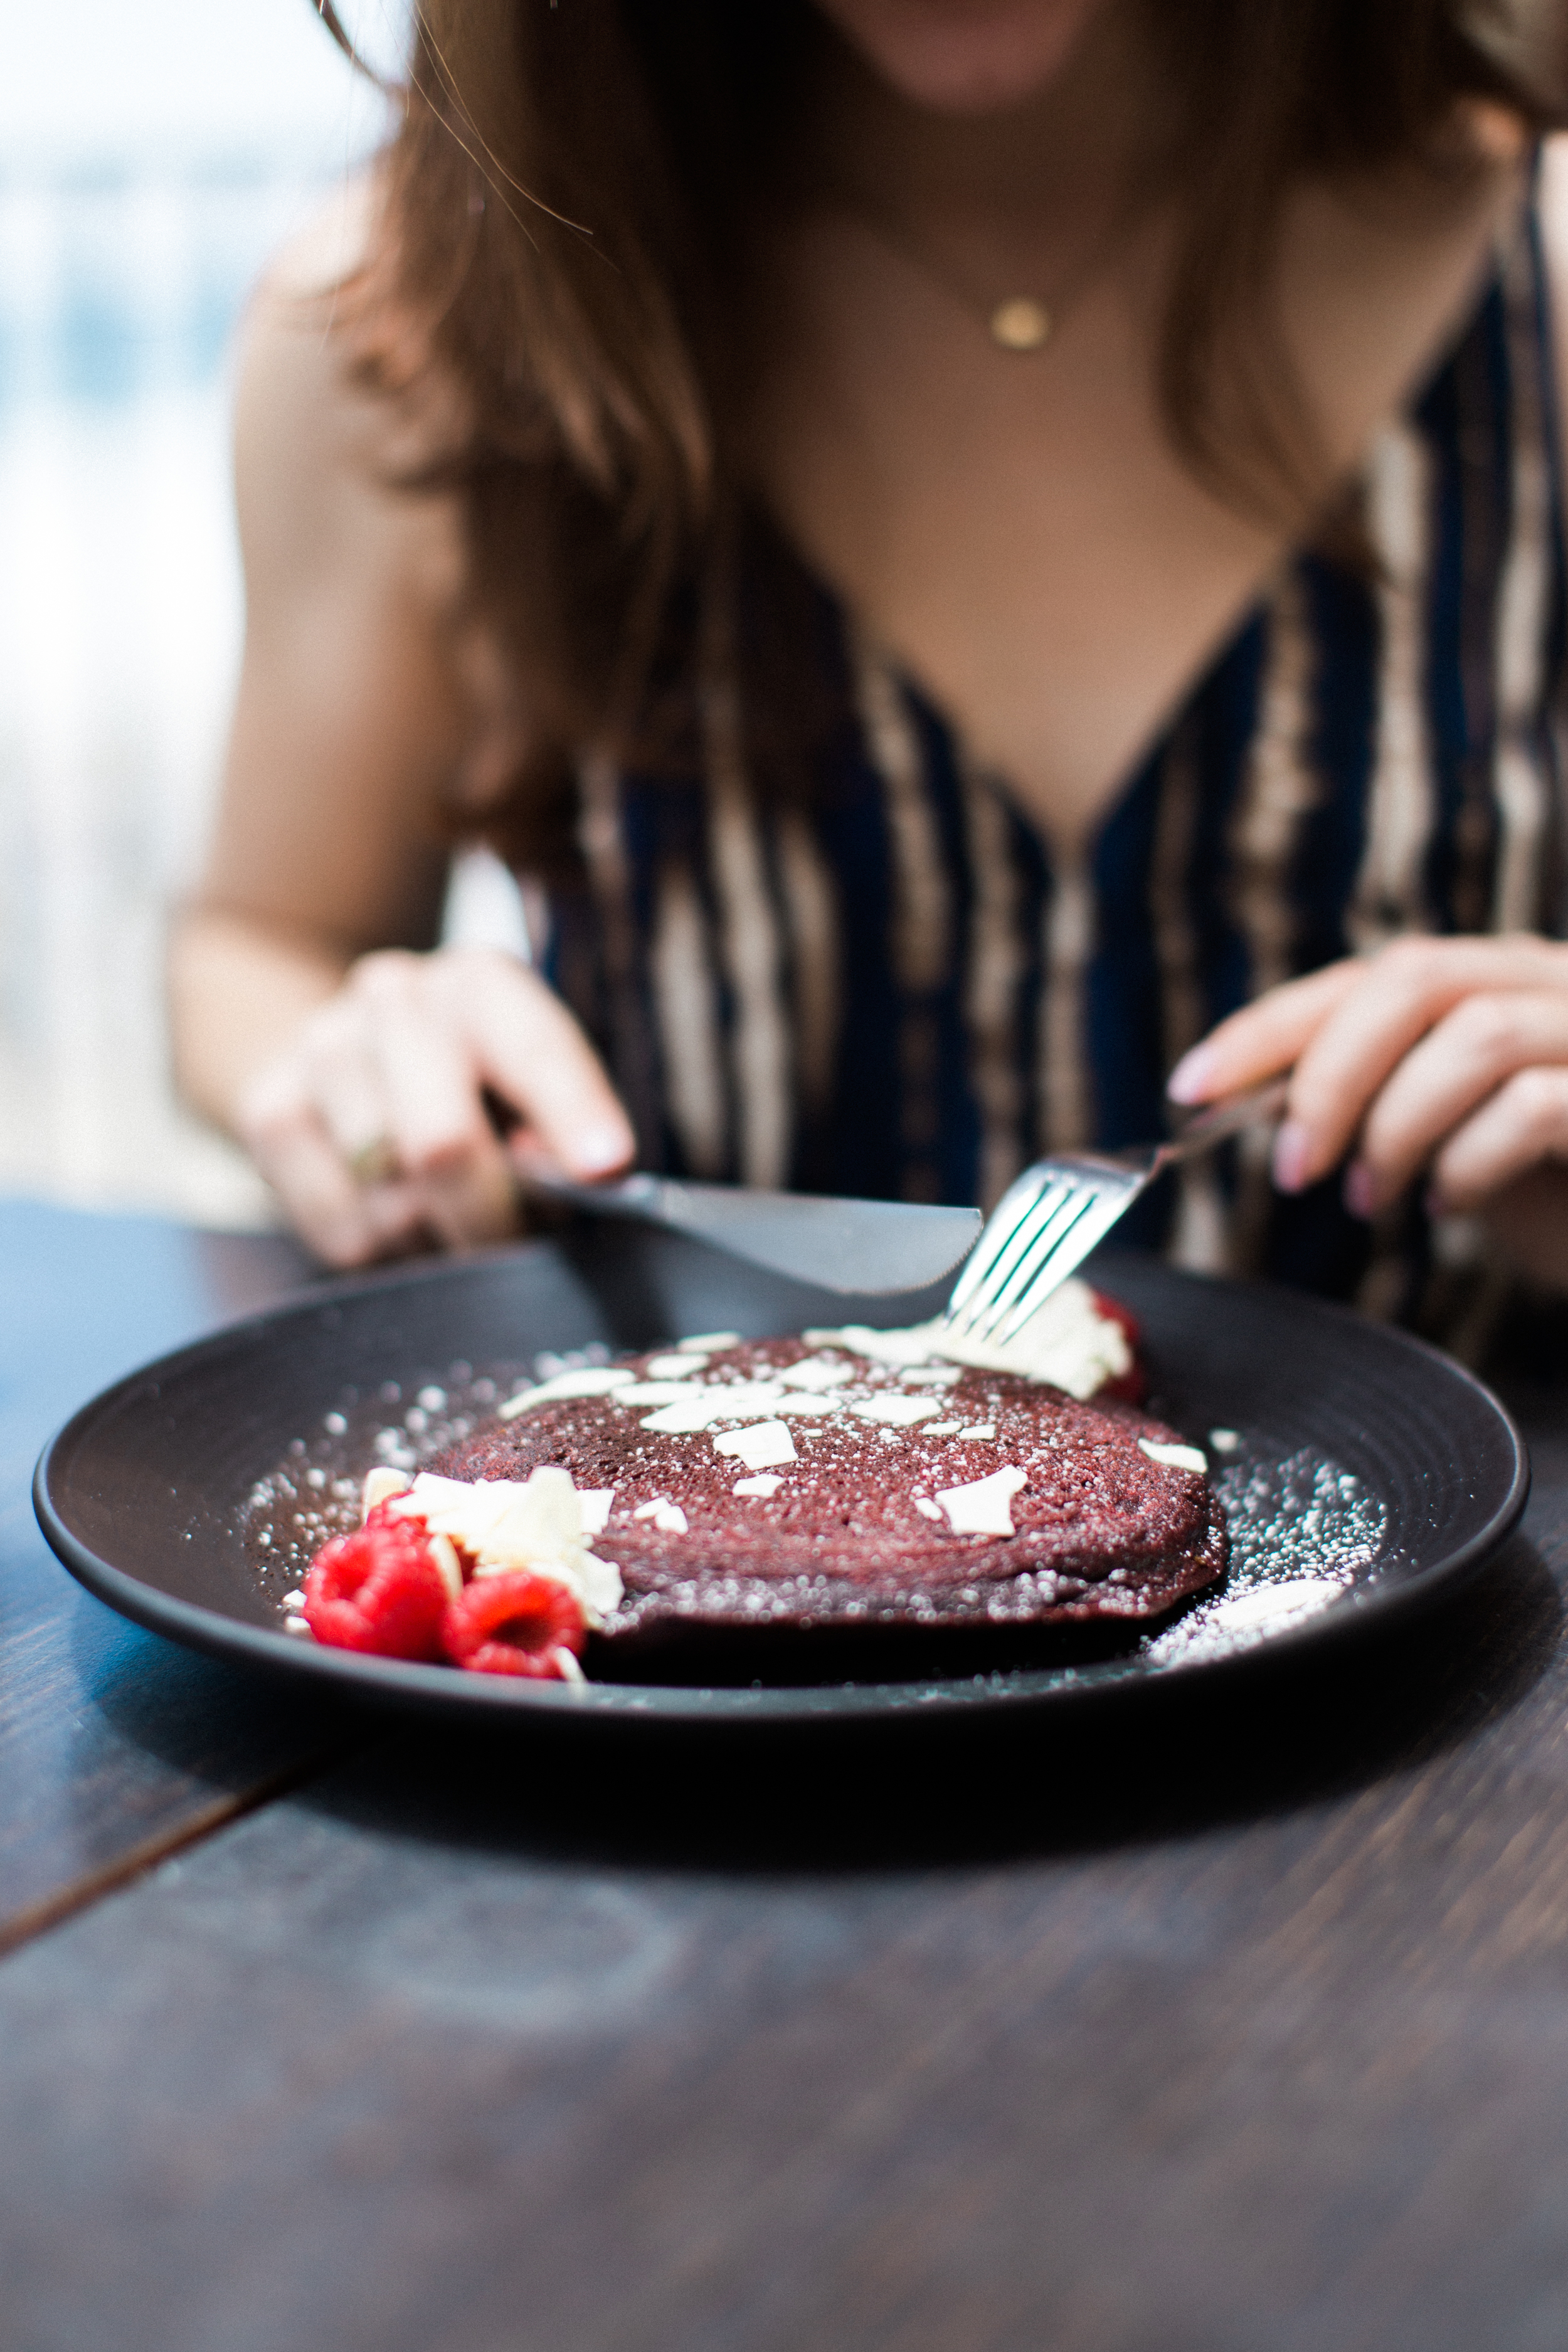 Red Velvet Pancakes at Splashes at Surf & Sand Hotel